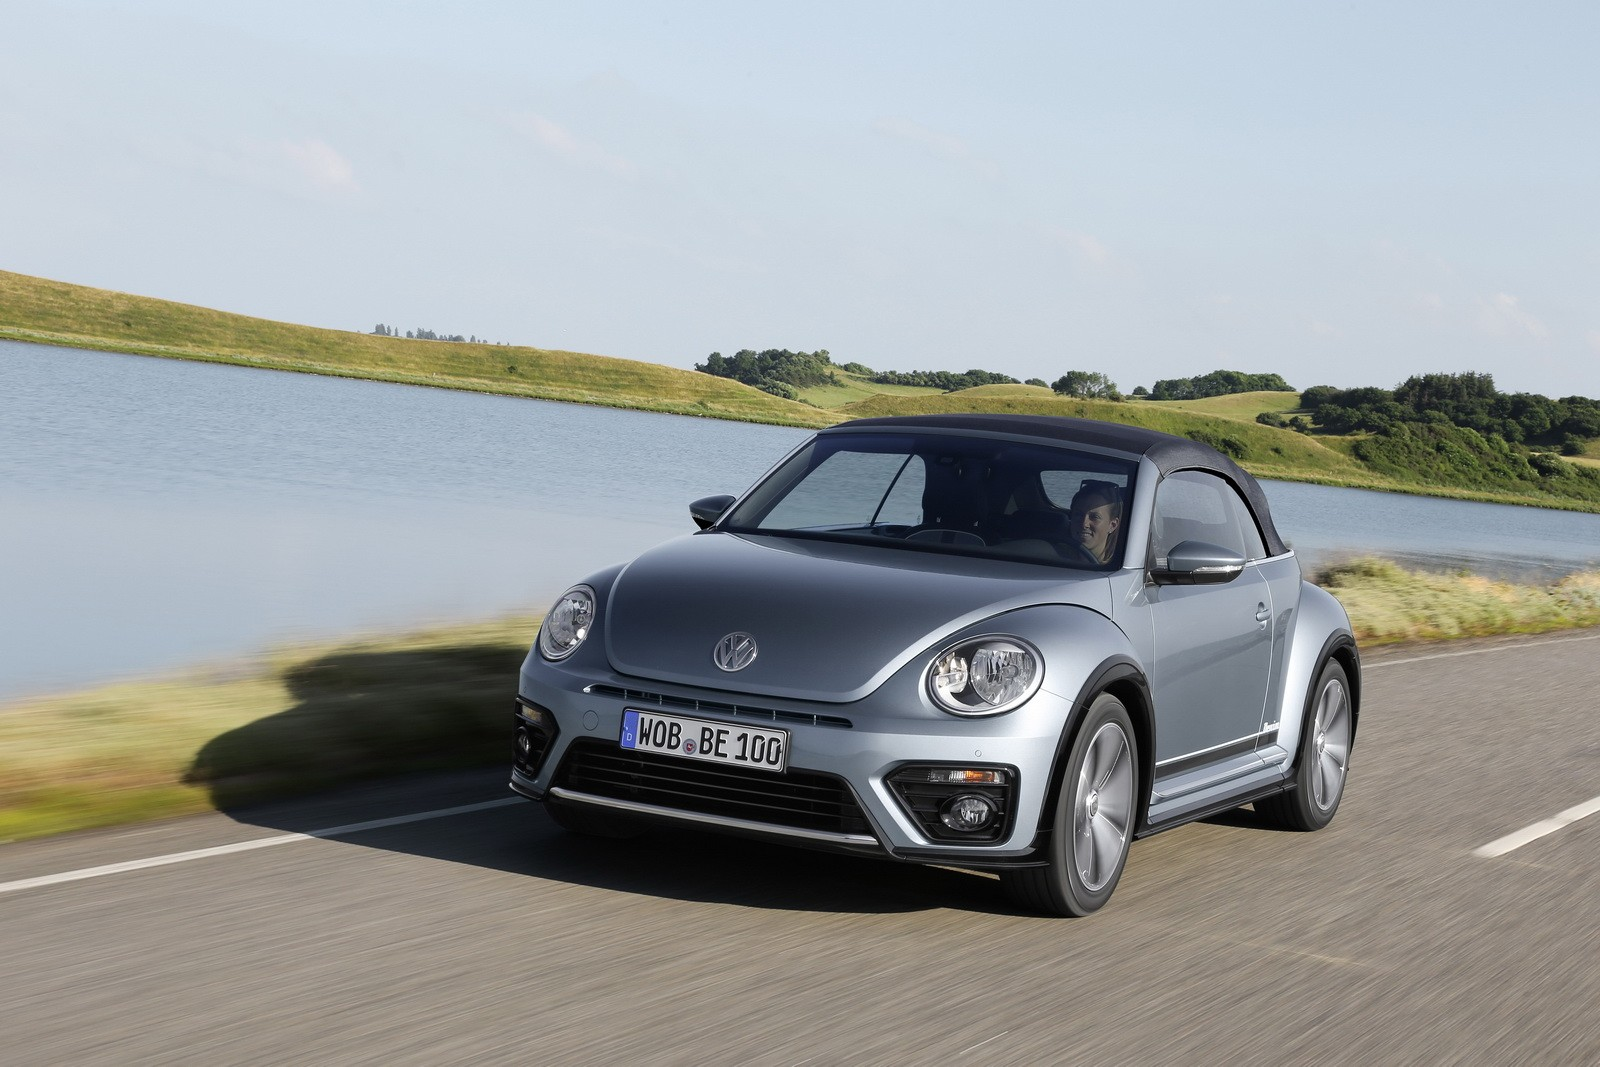 VW Beetle SUV Coming in 2019 with Hybrid and Allroad ...